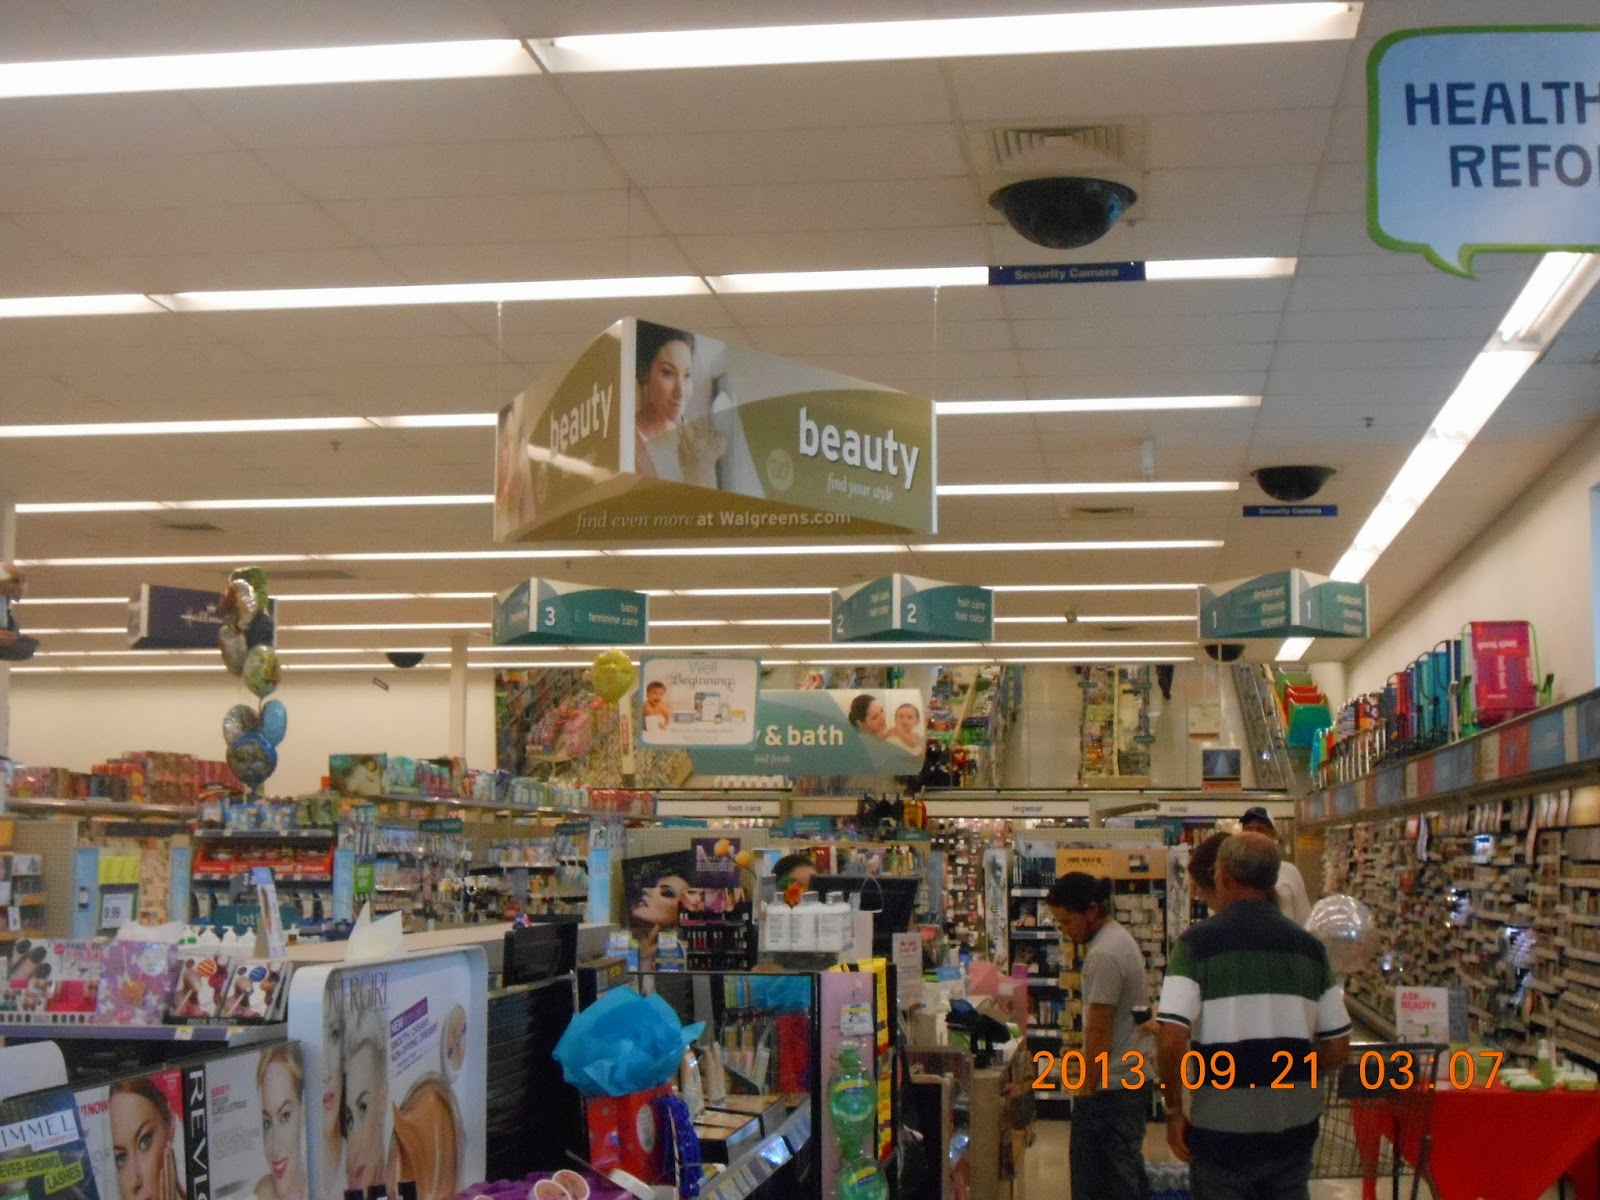 The Wag - The Walgreens Blog: West Palm Beach the complete Walgreens